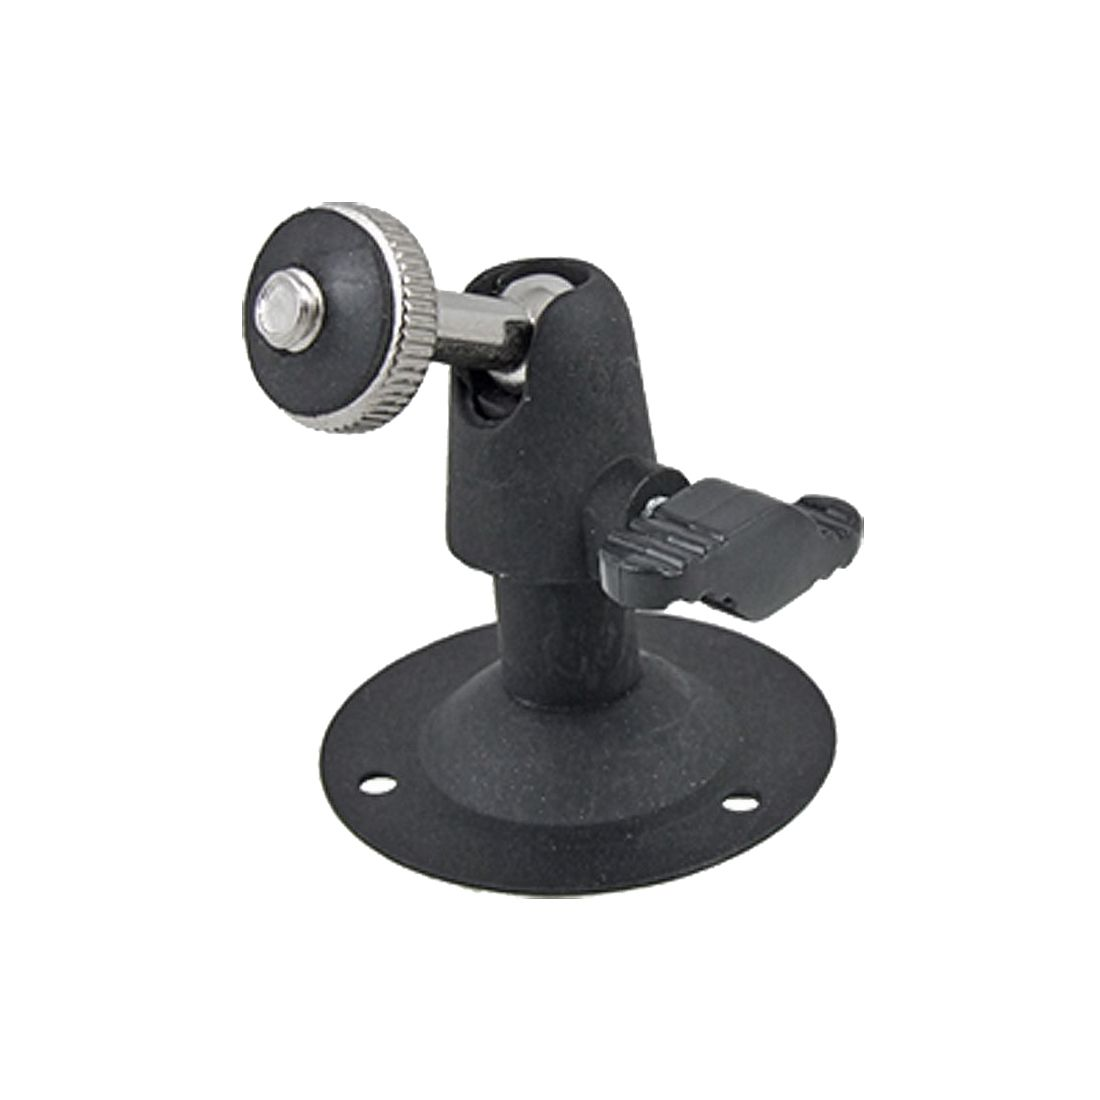 MOOL 2.6 inch High Wall Ceiling Mount Stand Bracket for Security CCTV Camera mool silver metal wall ceiling mount stand bracket for cctv security ip camera 4pcs